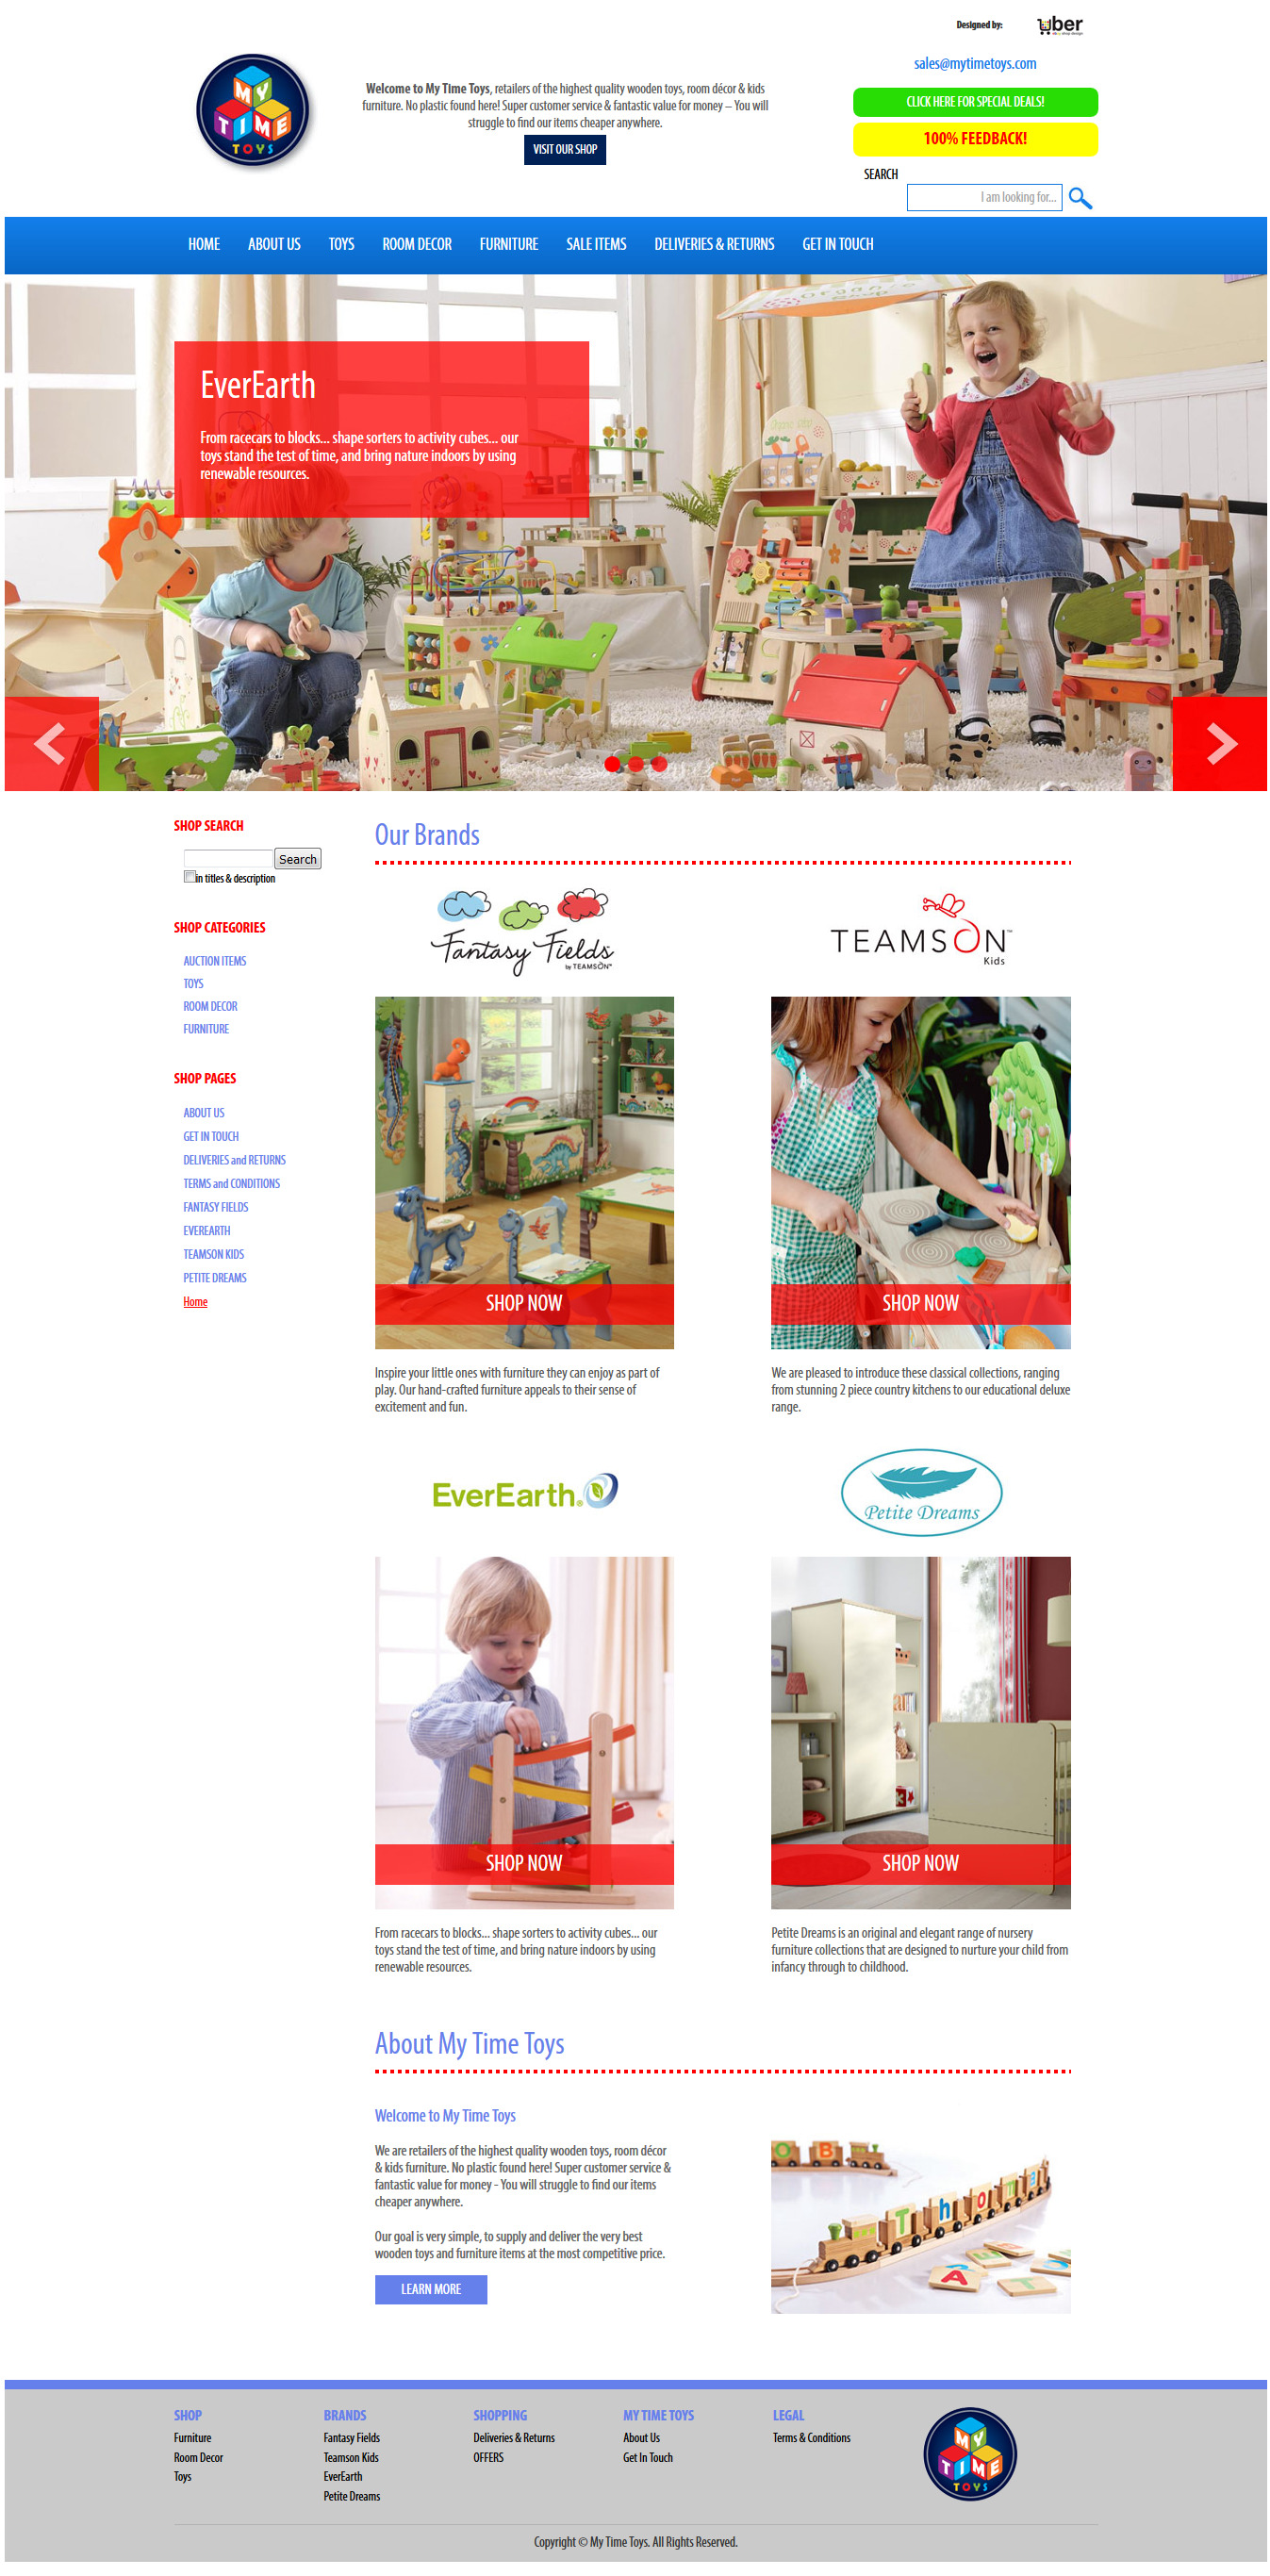 My Toy Time storefront